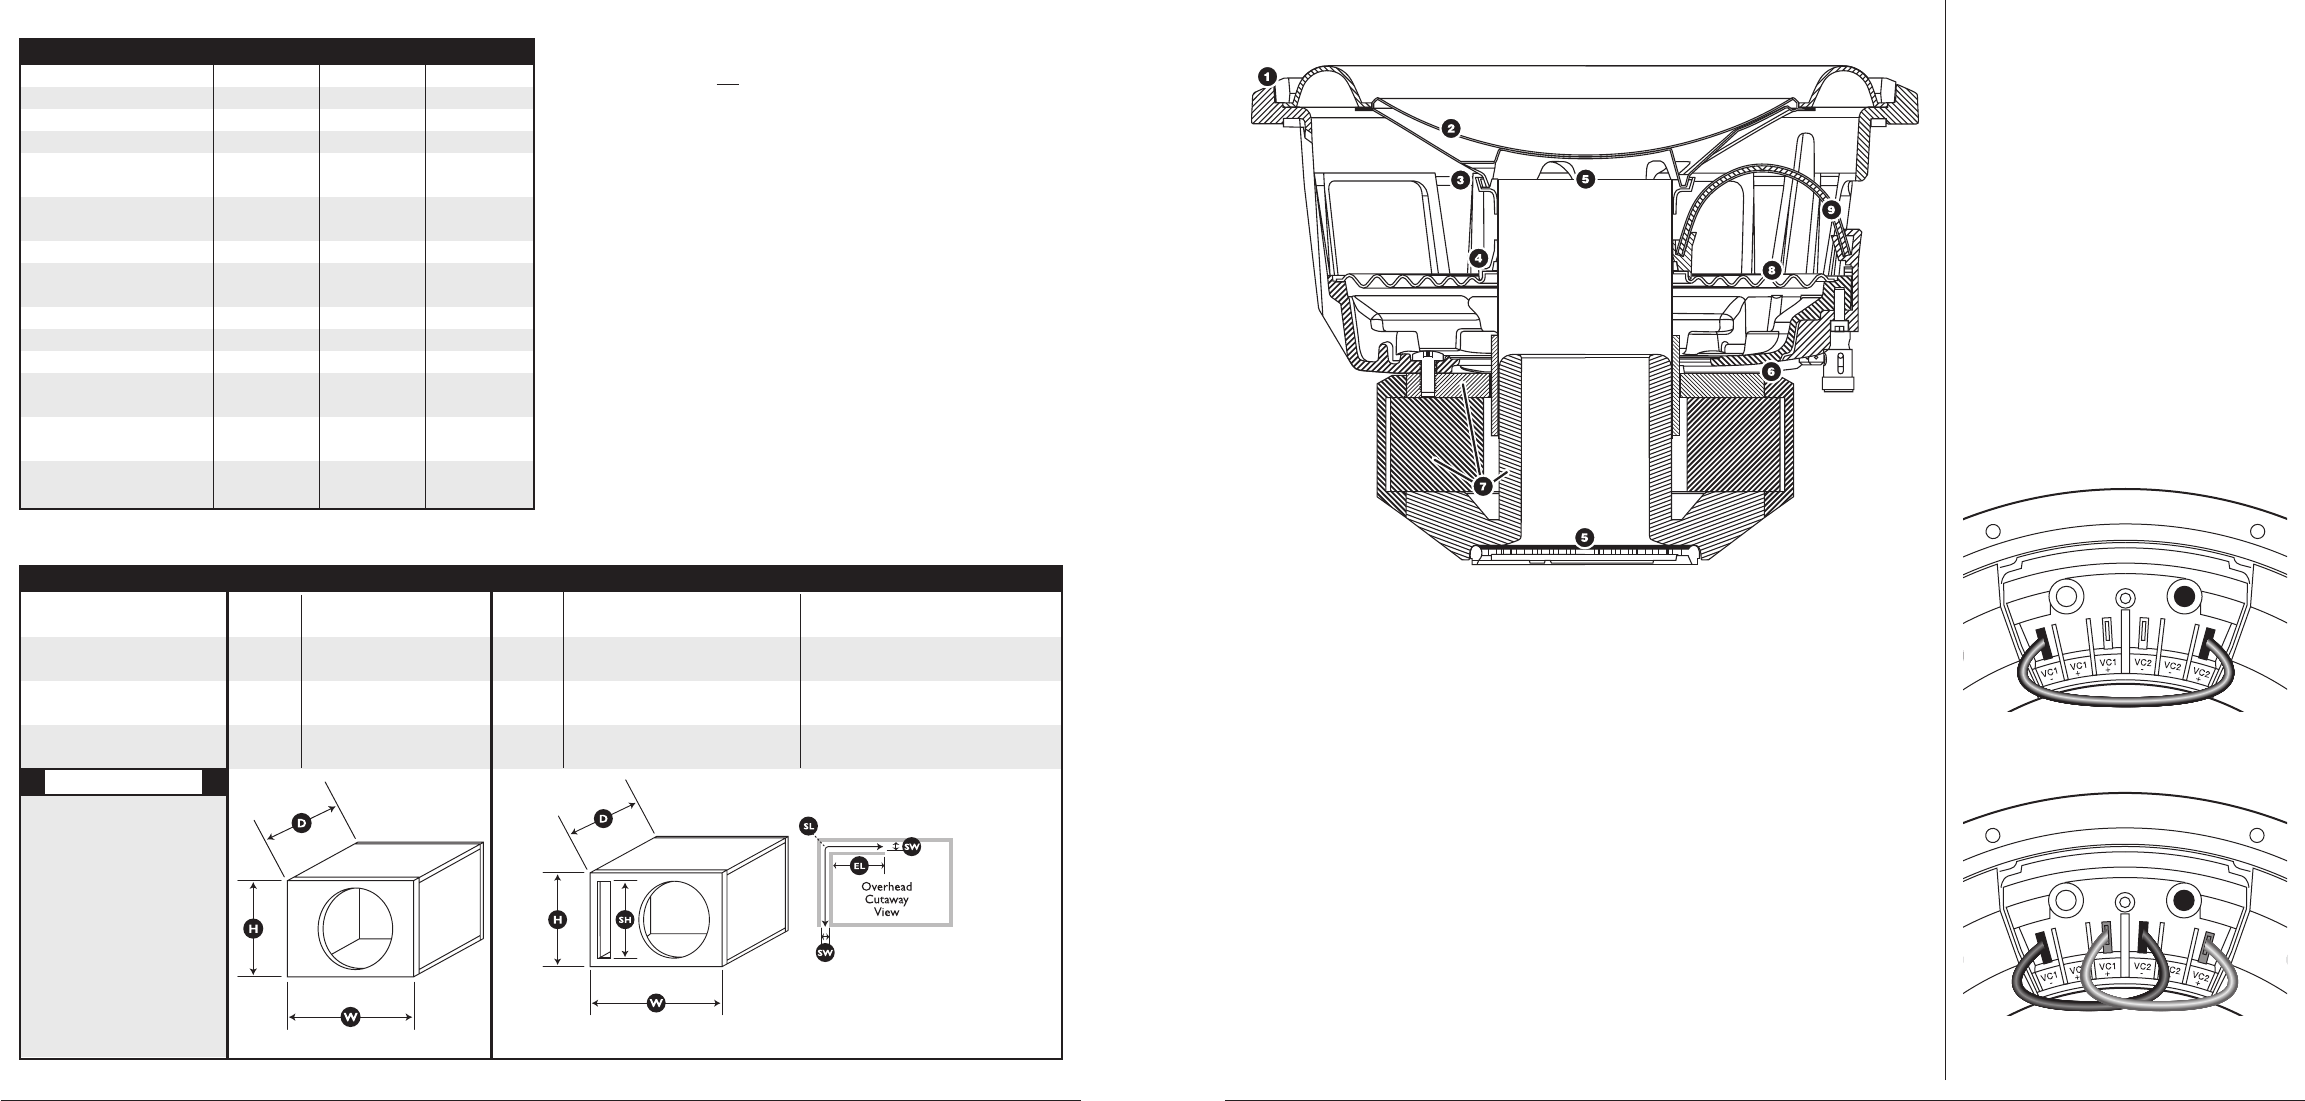 596afd09 064e 6f84 6d6b 3c5d40f0eb41 bg2 page 2 of jl audio speaker 10w6v2 d4 user guide manualsonline com jl audio speaker wiring diagram at crackthecode.co